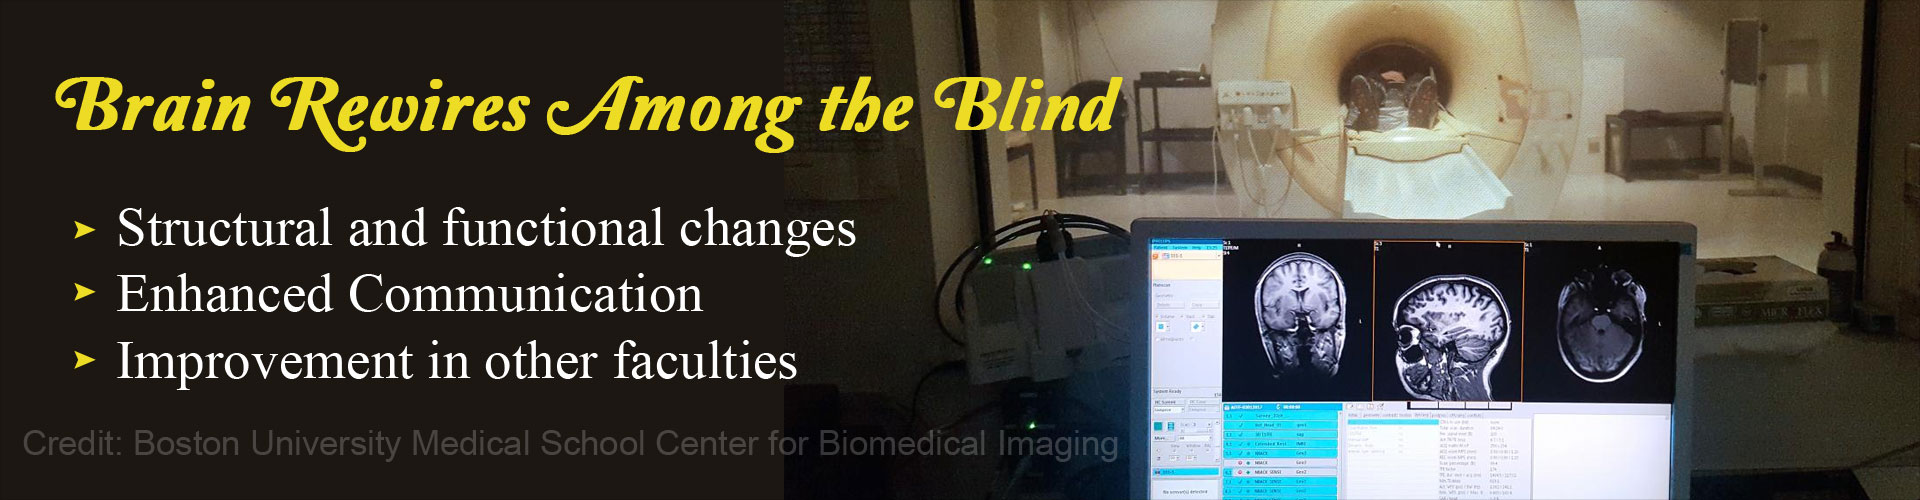 Brain Rewires Among the Blind - Structural and functional changes - Enhanced communication - Improvement in other faculties